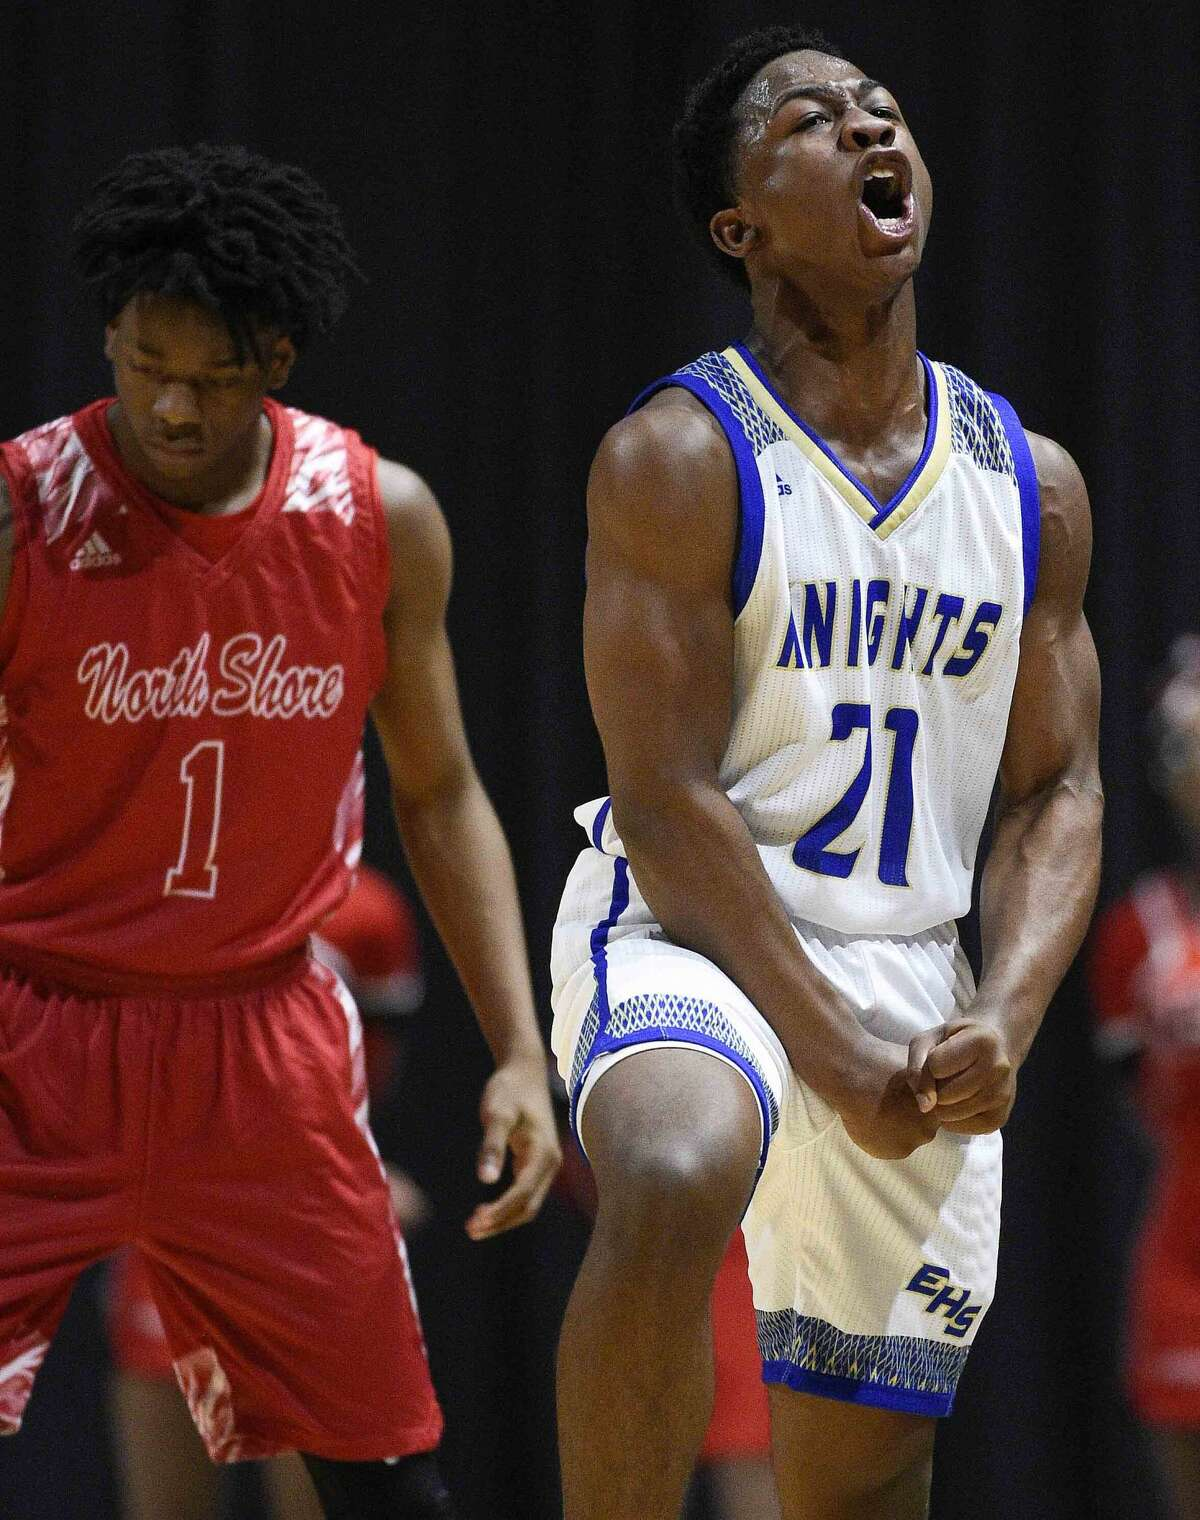 Elkins guard Jacob Harris, right, reacts after a North Shore turnover during the second half of a 6A regional semifinal high school basketball game, Friday, March 1, 2019, in Cypress, TX.